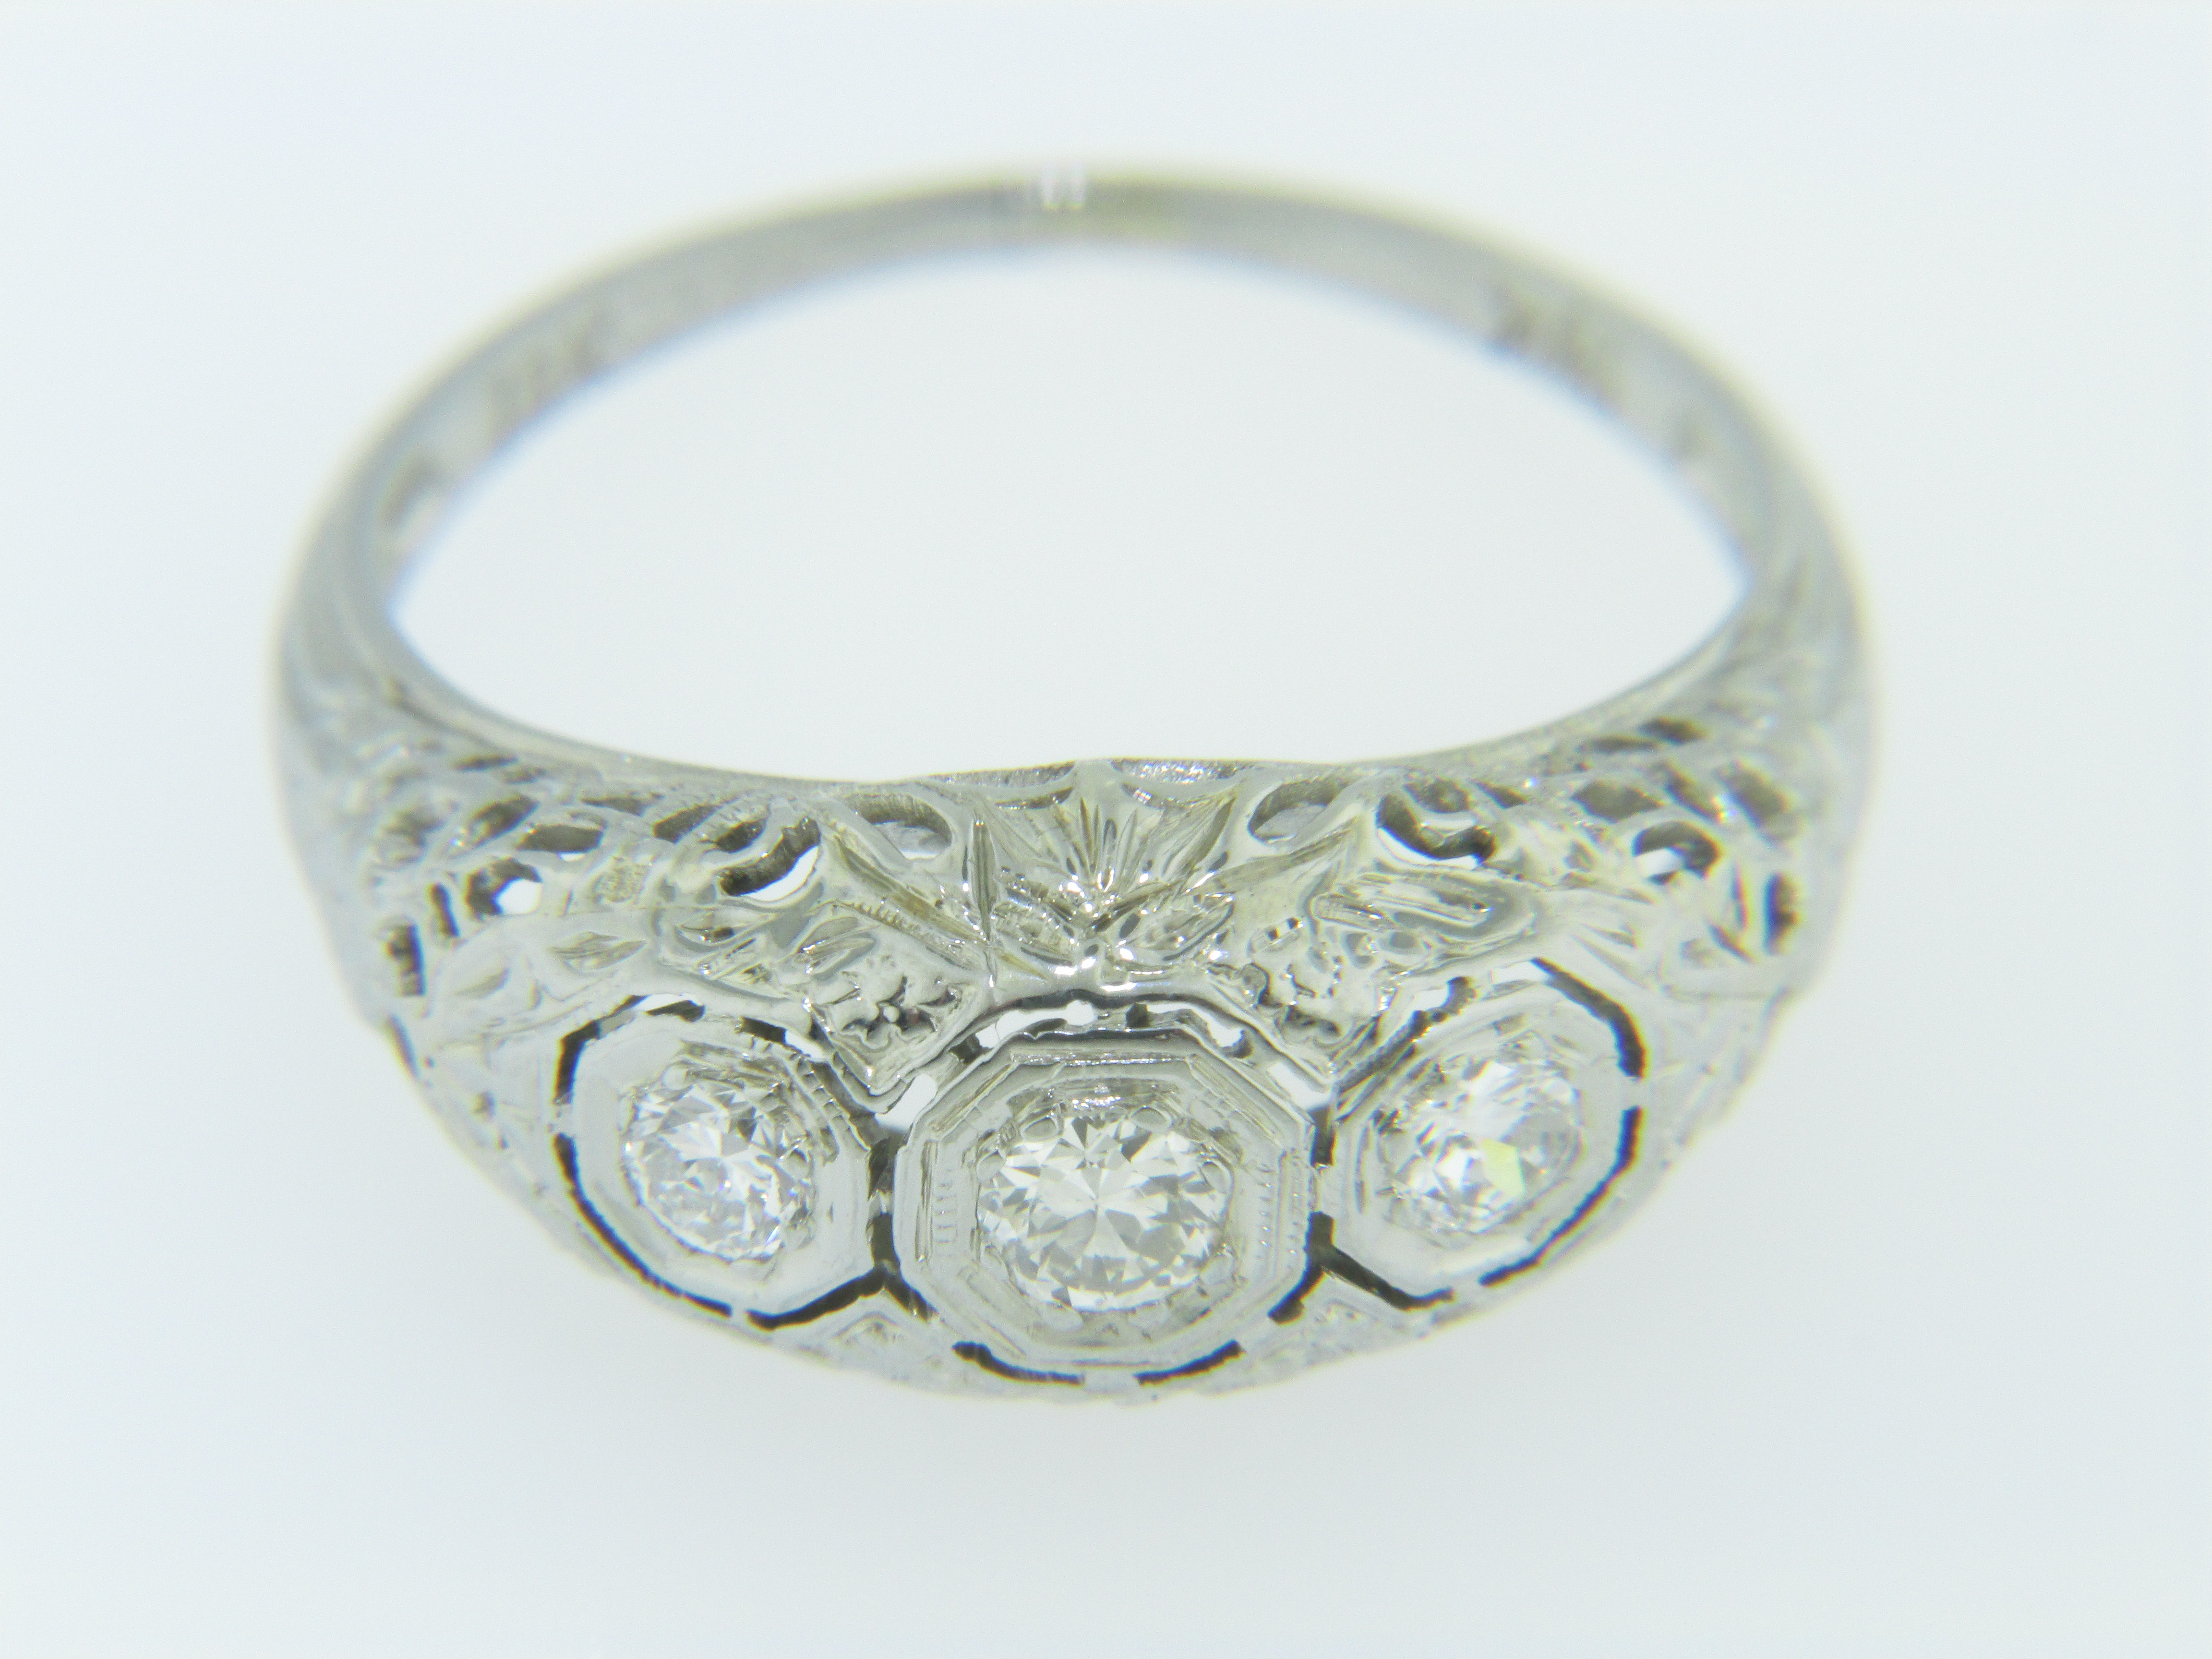 Antique Three Stone Ring Best 2000 Antique Decor Ideas